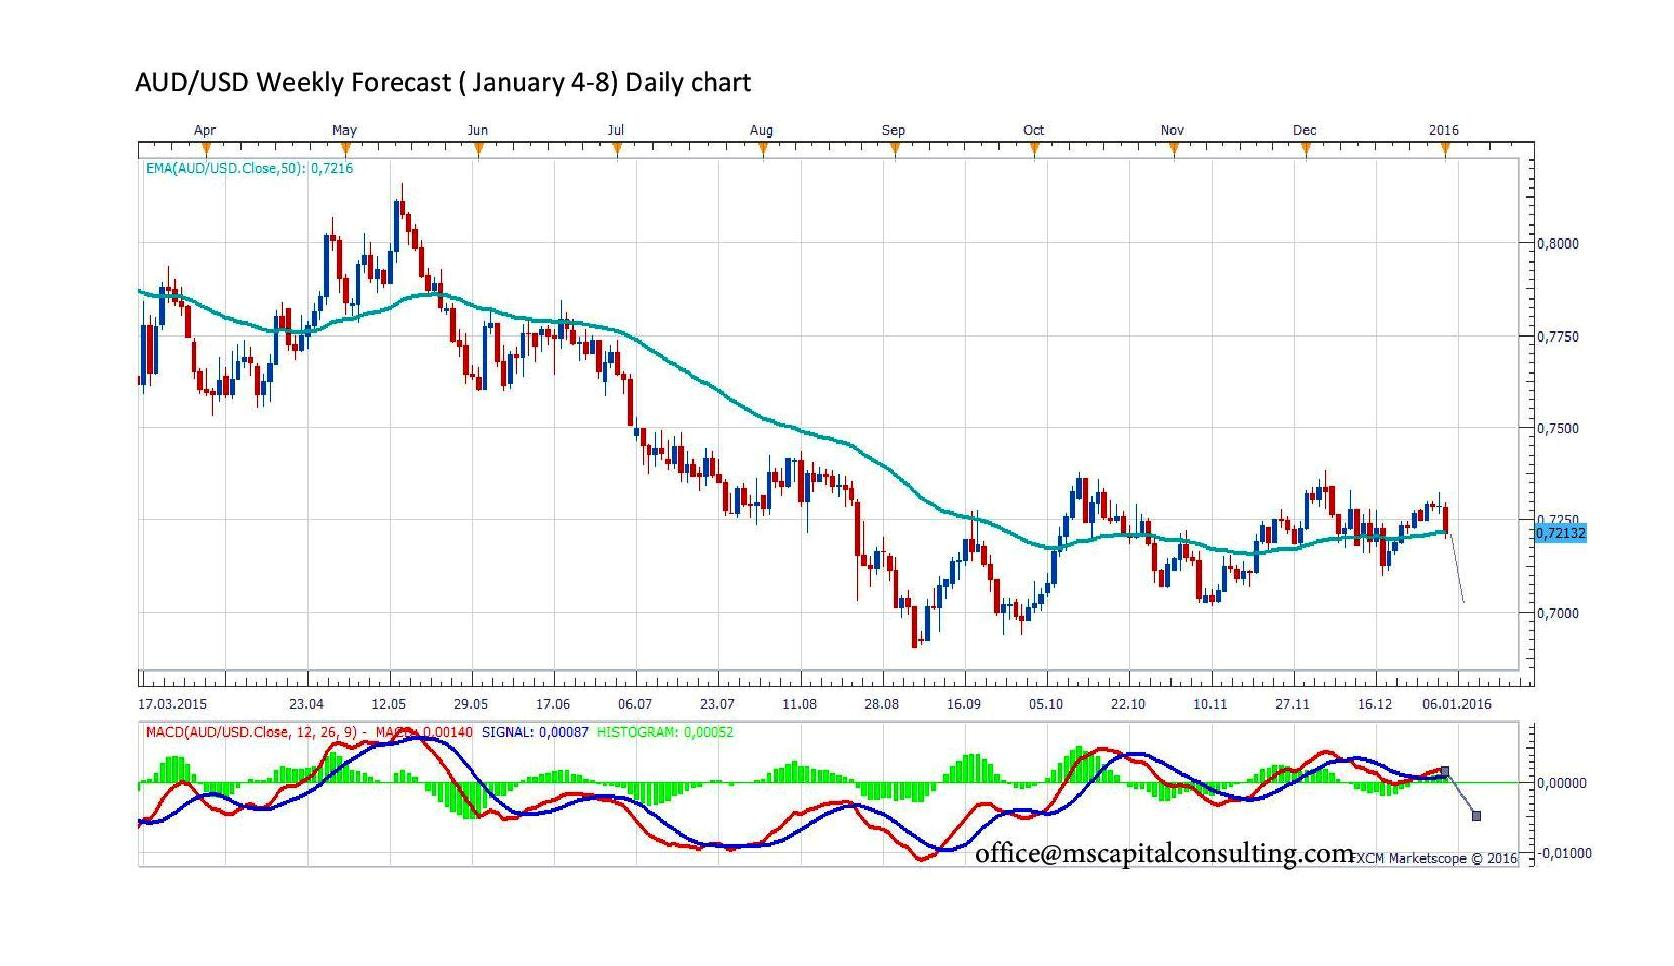 Aud usd forex forecast